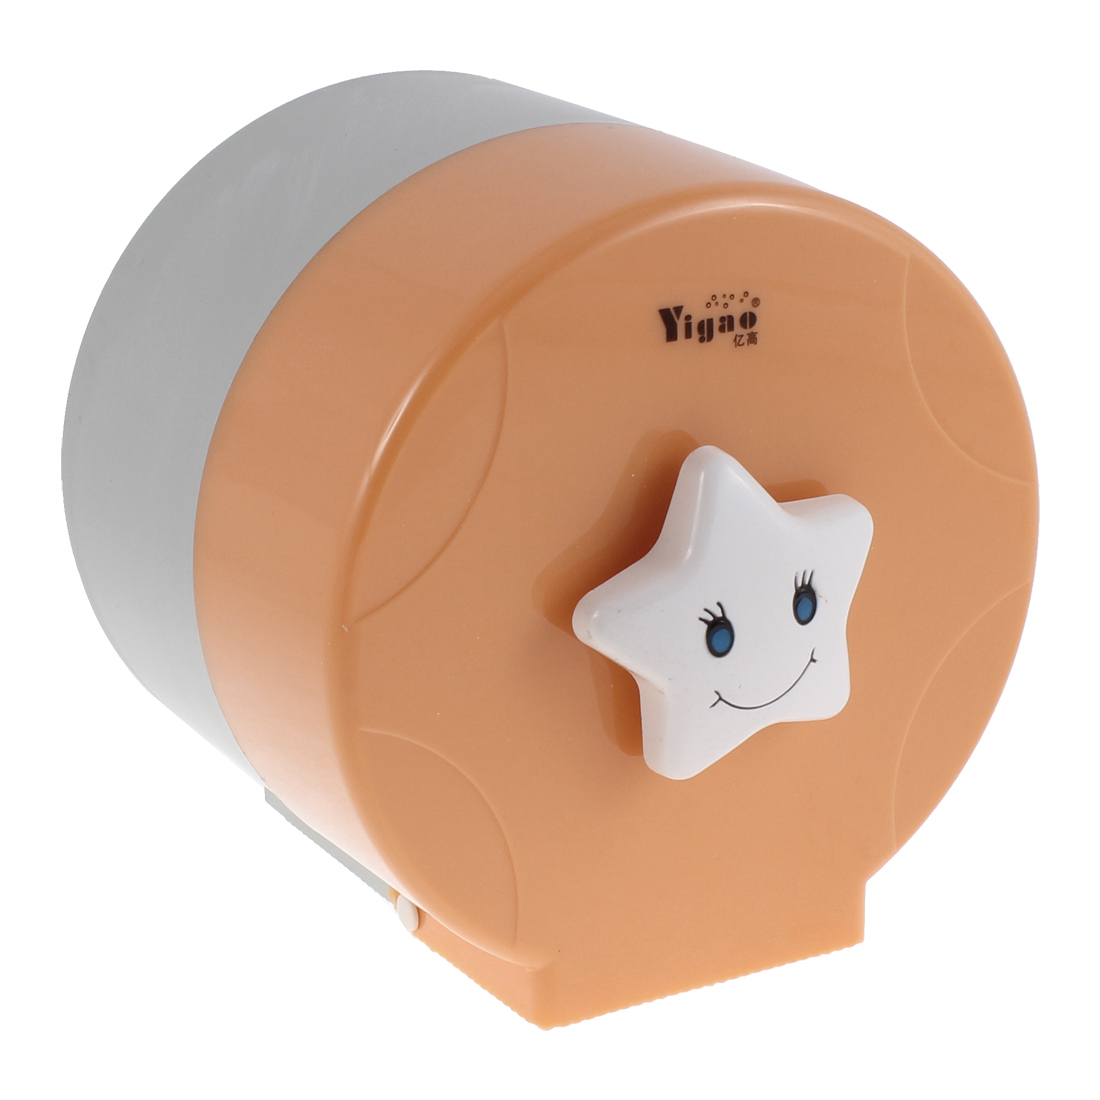 Cylindrical Design Toilet Paper Rack Tissue Holder Box Cover Orange